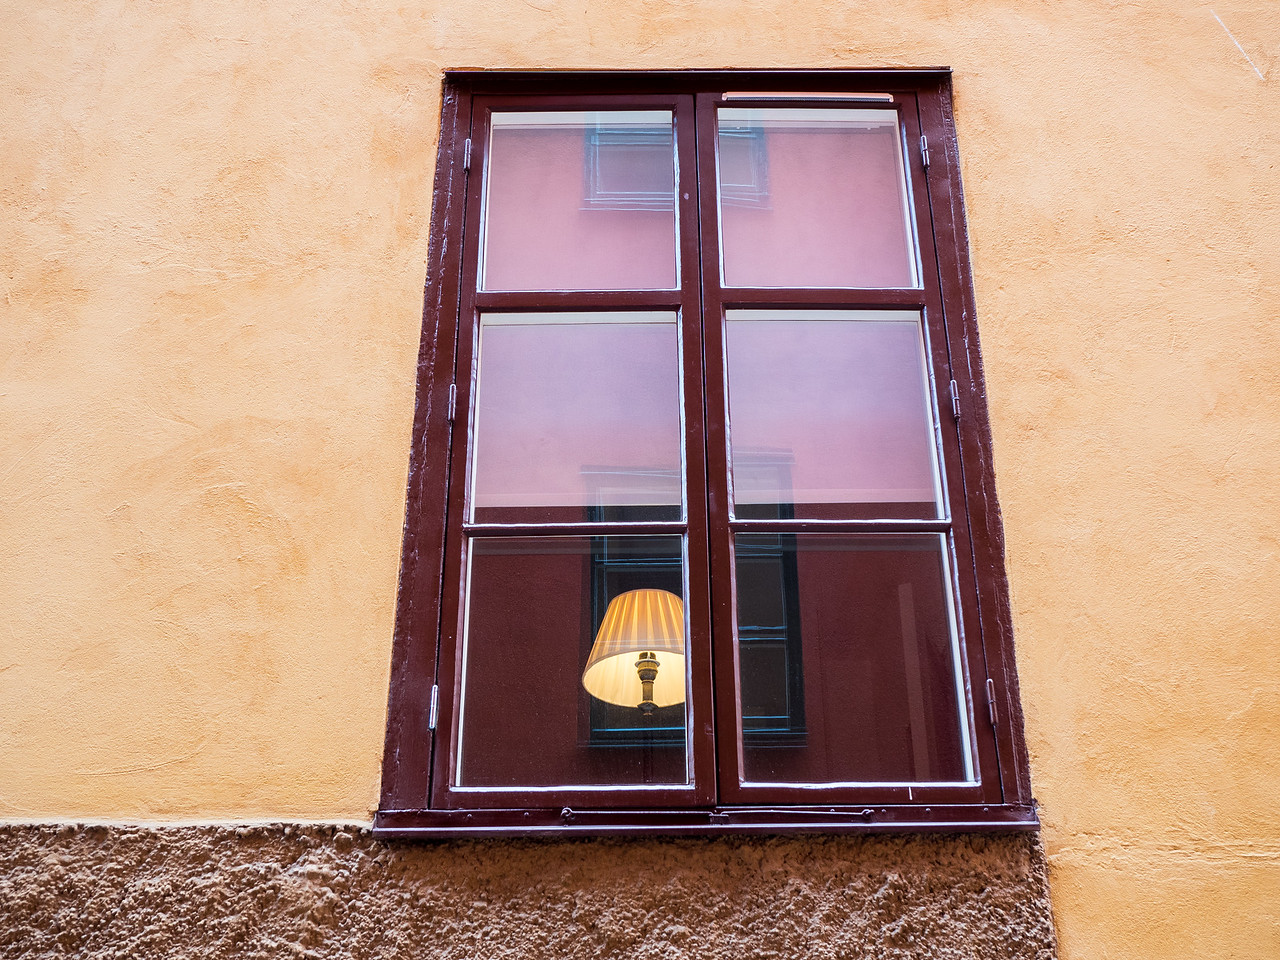 An interesting window and reflections, in Gamla Stan.